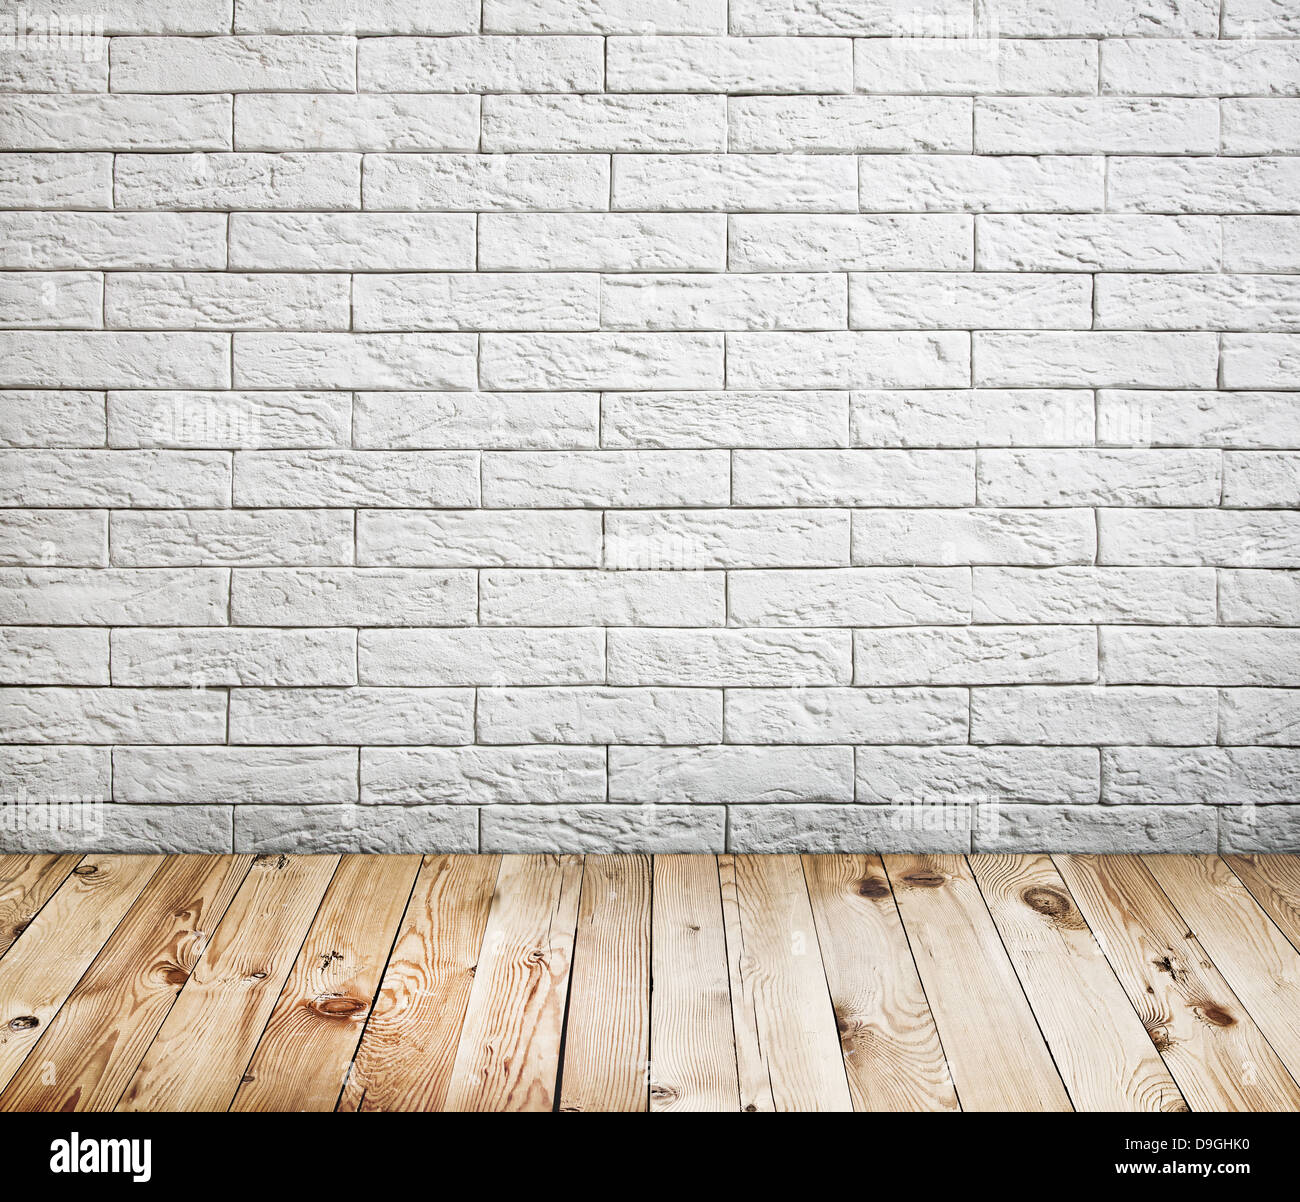 Room Interior With White Brick Wall And Wood Floor Background